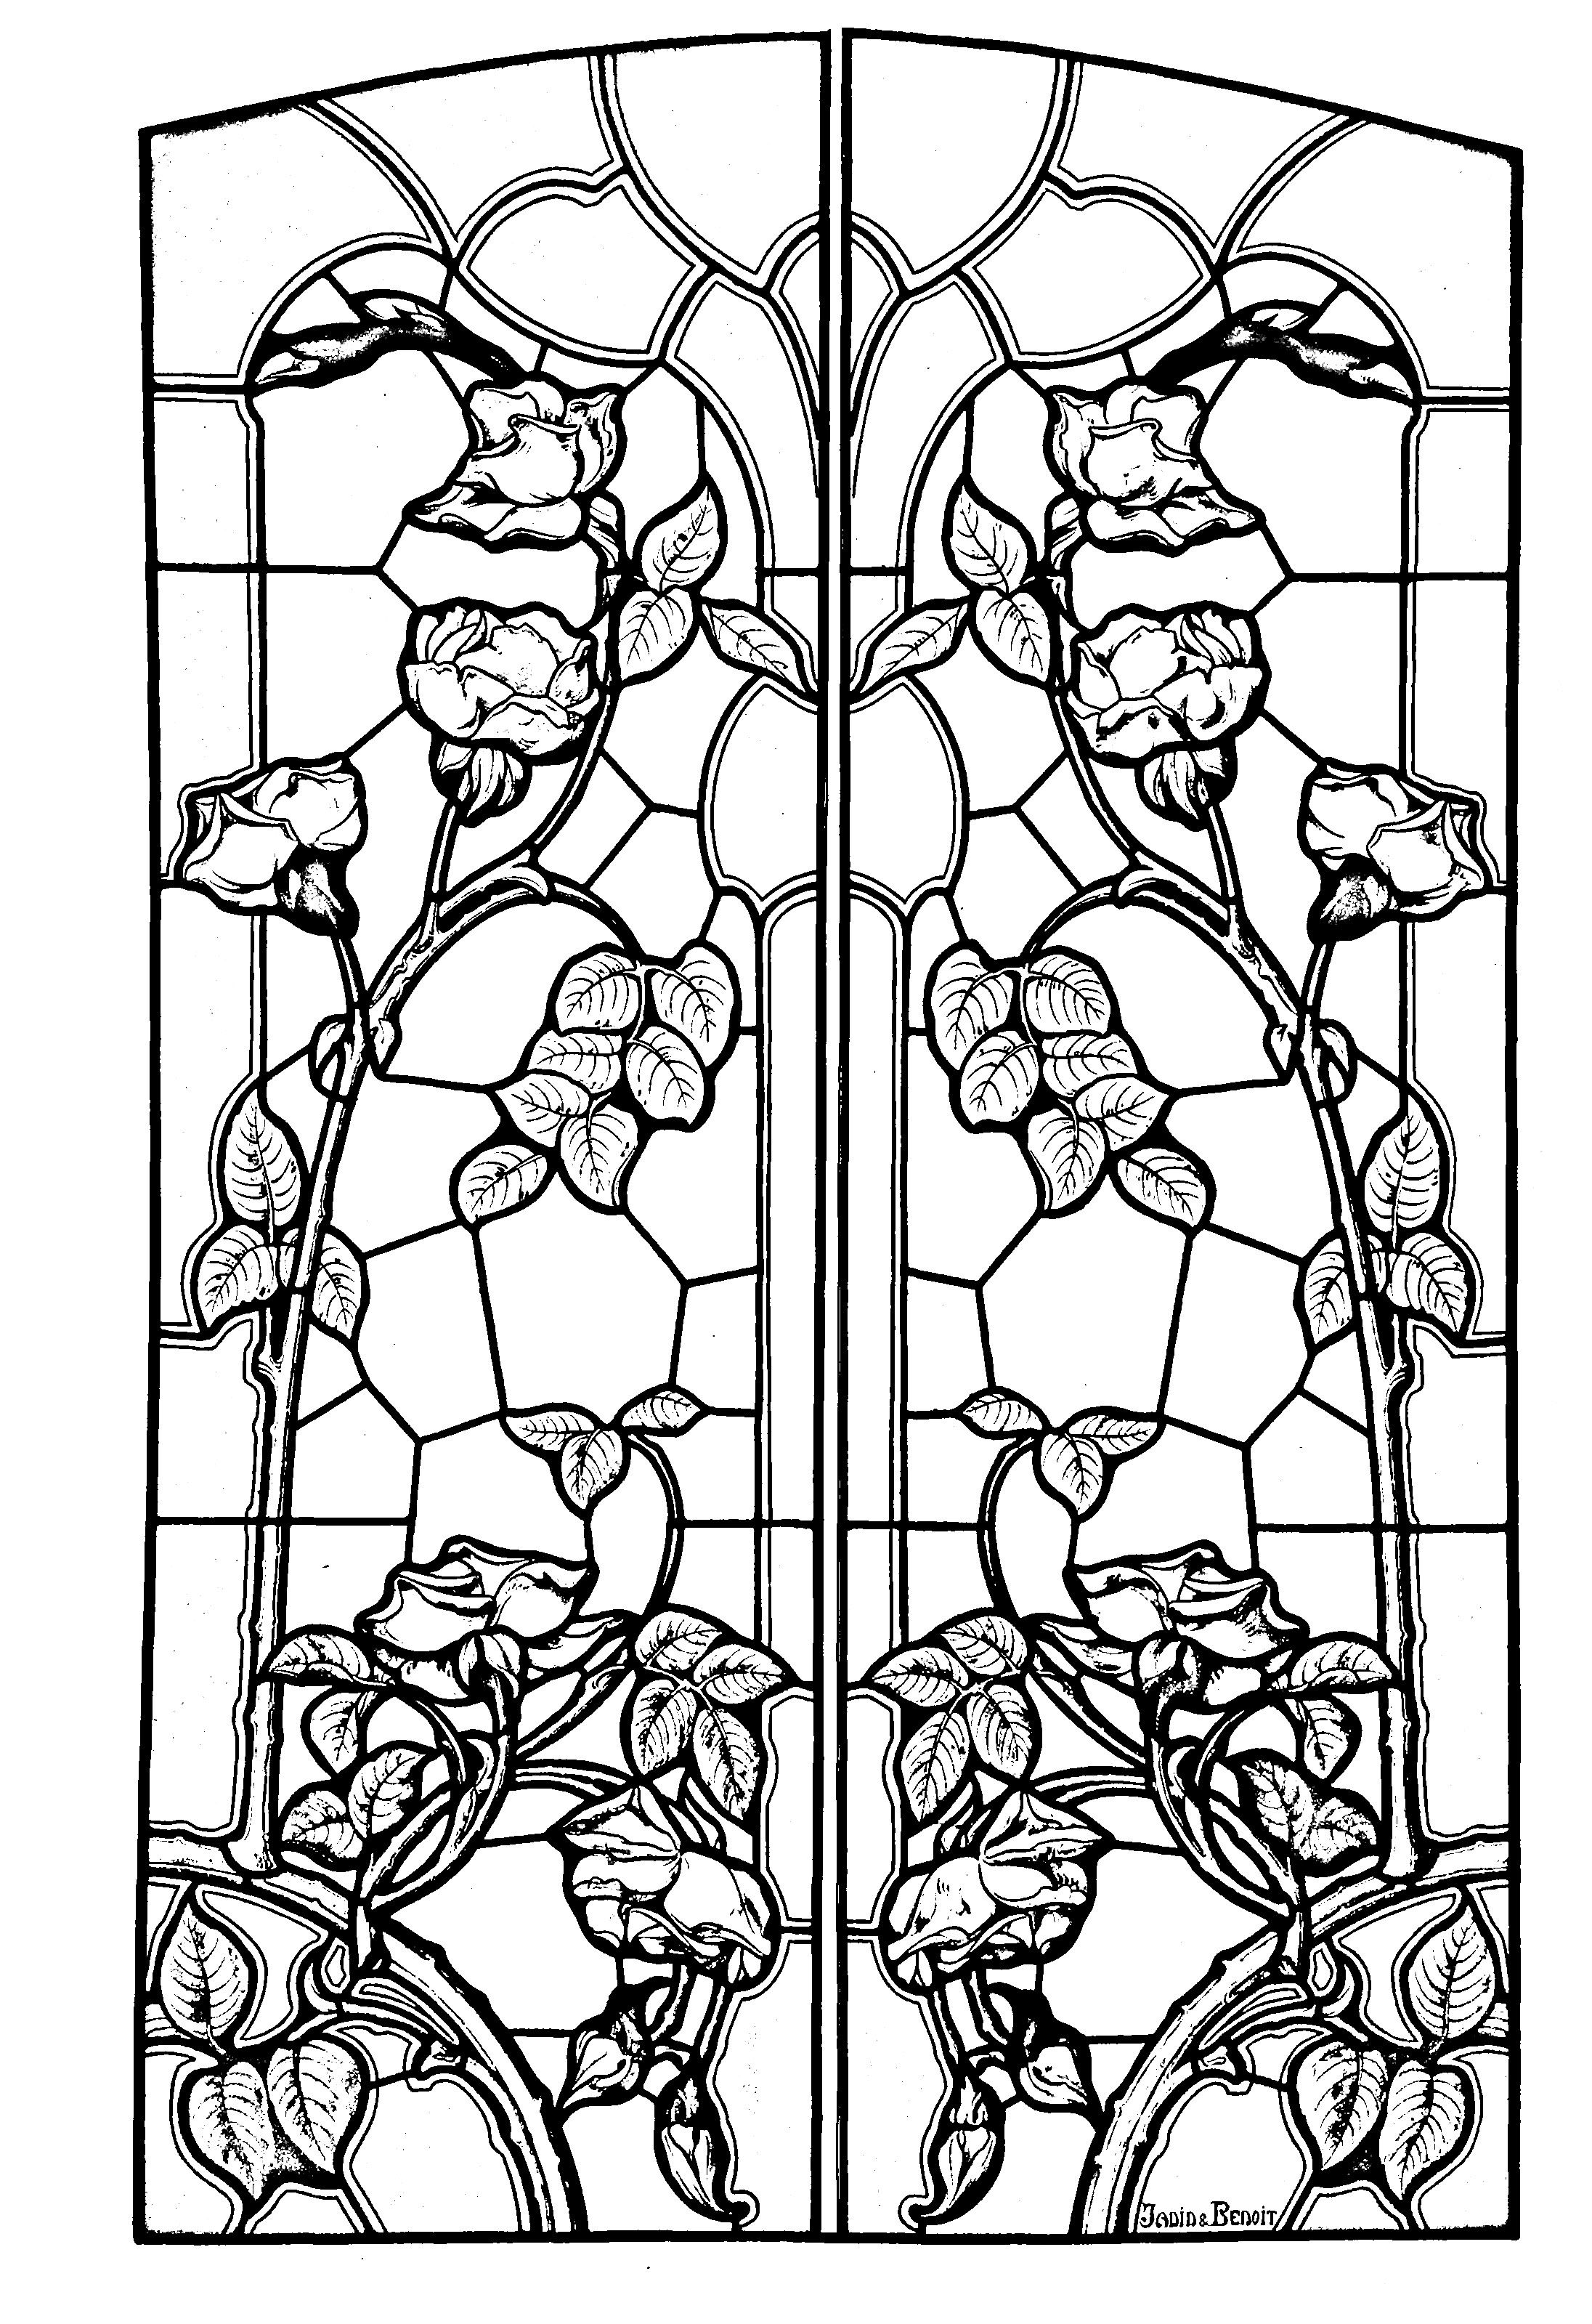 stained glass coloring pages for adults free stained glass coloring pages for adults printable to coloring adults stained glass pages for